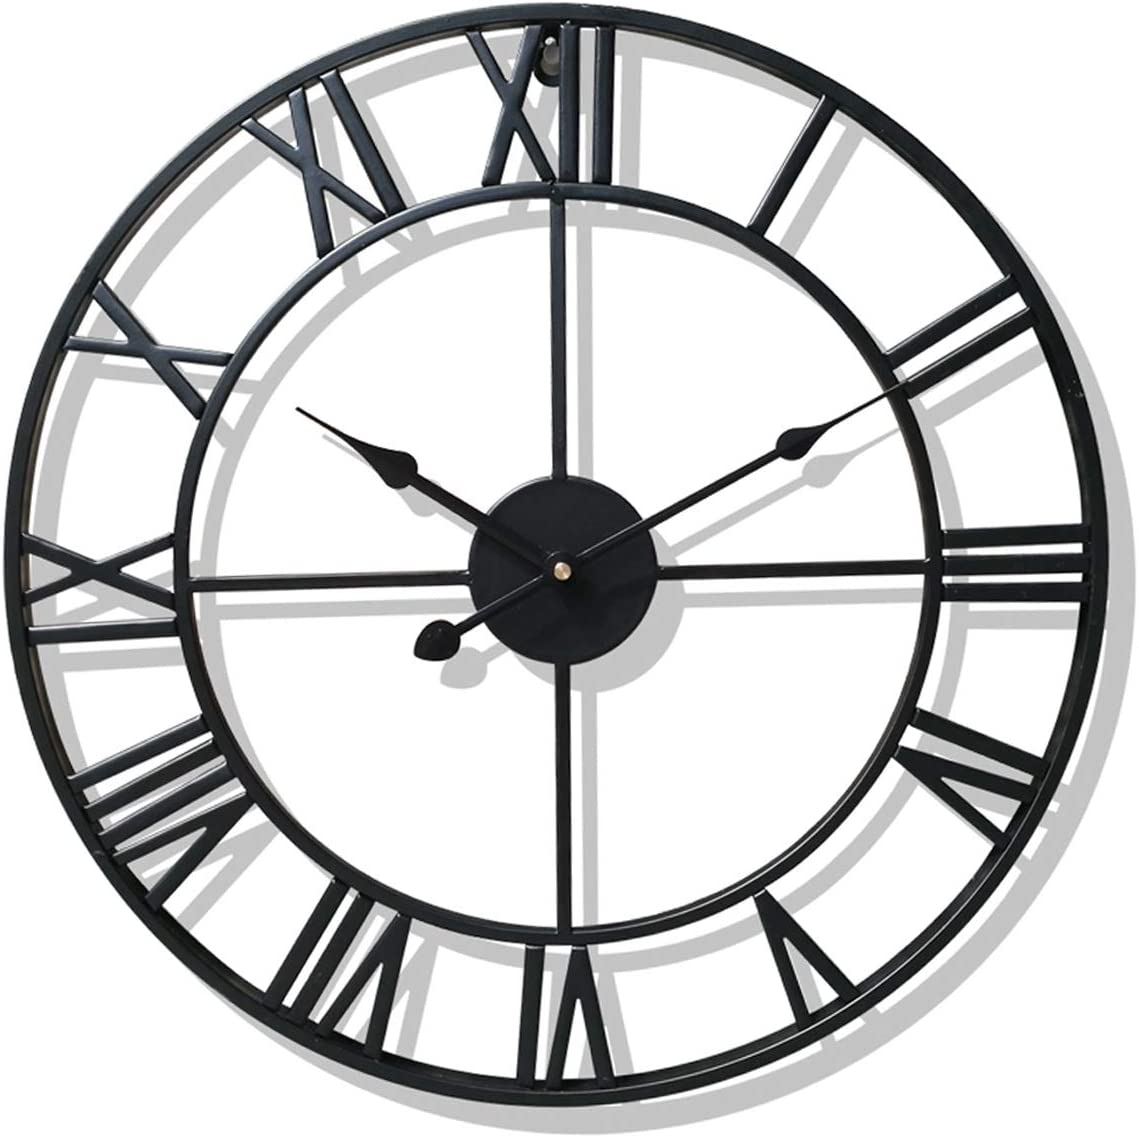 Kimdio Wall Clock, European Retro Clock with Large Roman Numerals, Indoor Silent Battery Operated Metal Clock for Home, Living Room, Kitchen and Den - 16 Inch (Classical Black)